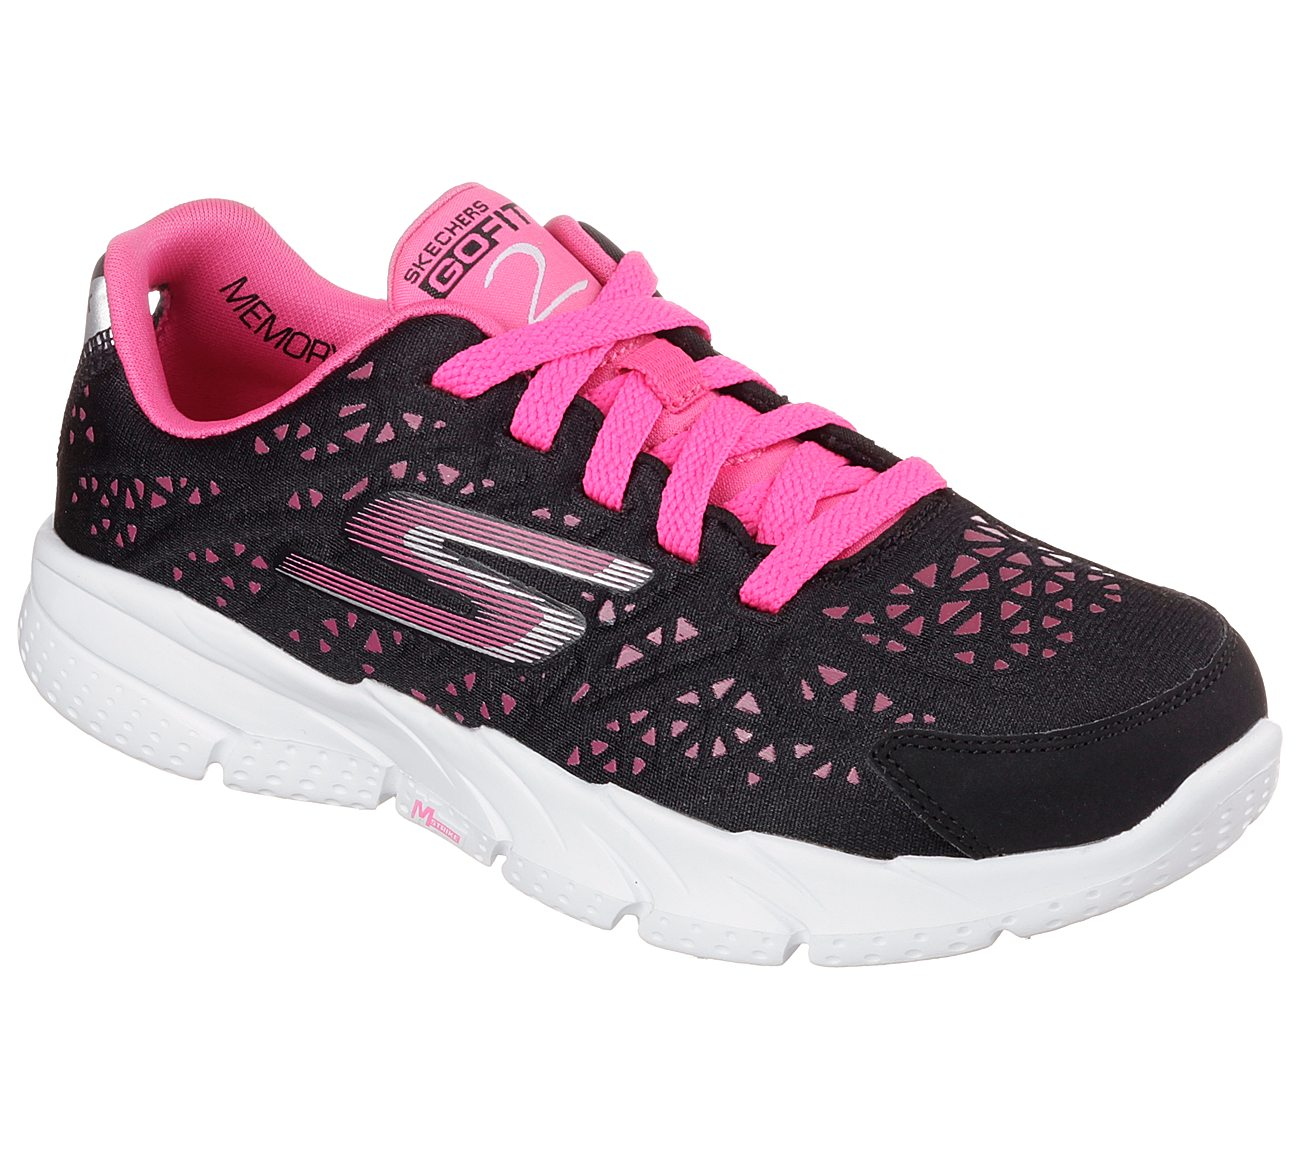 Skechers Women's Go Fit 2 Presto Running Shoes